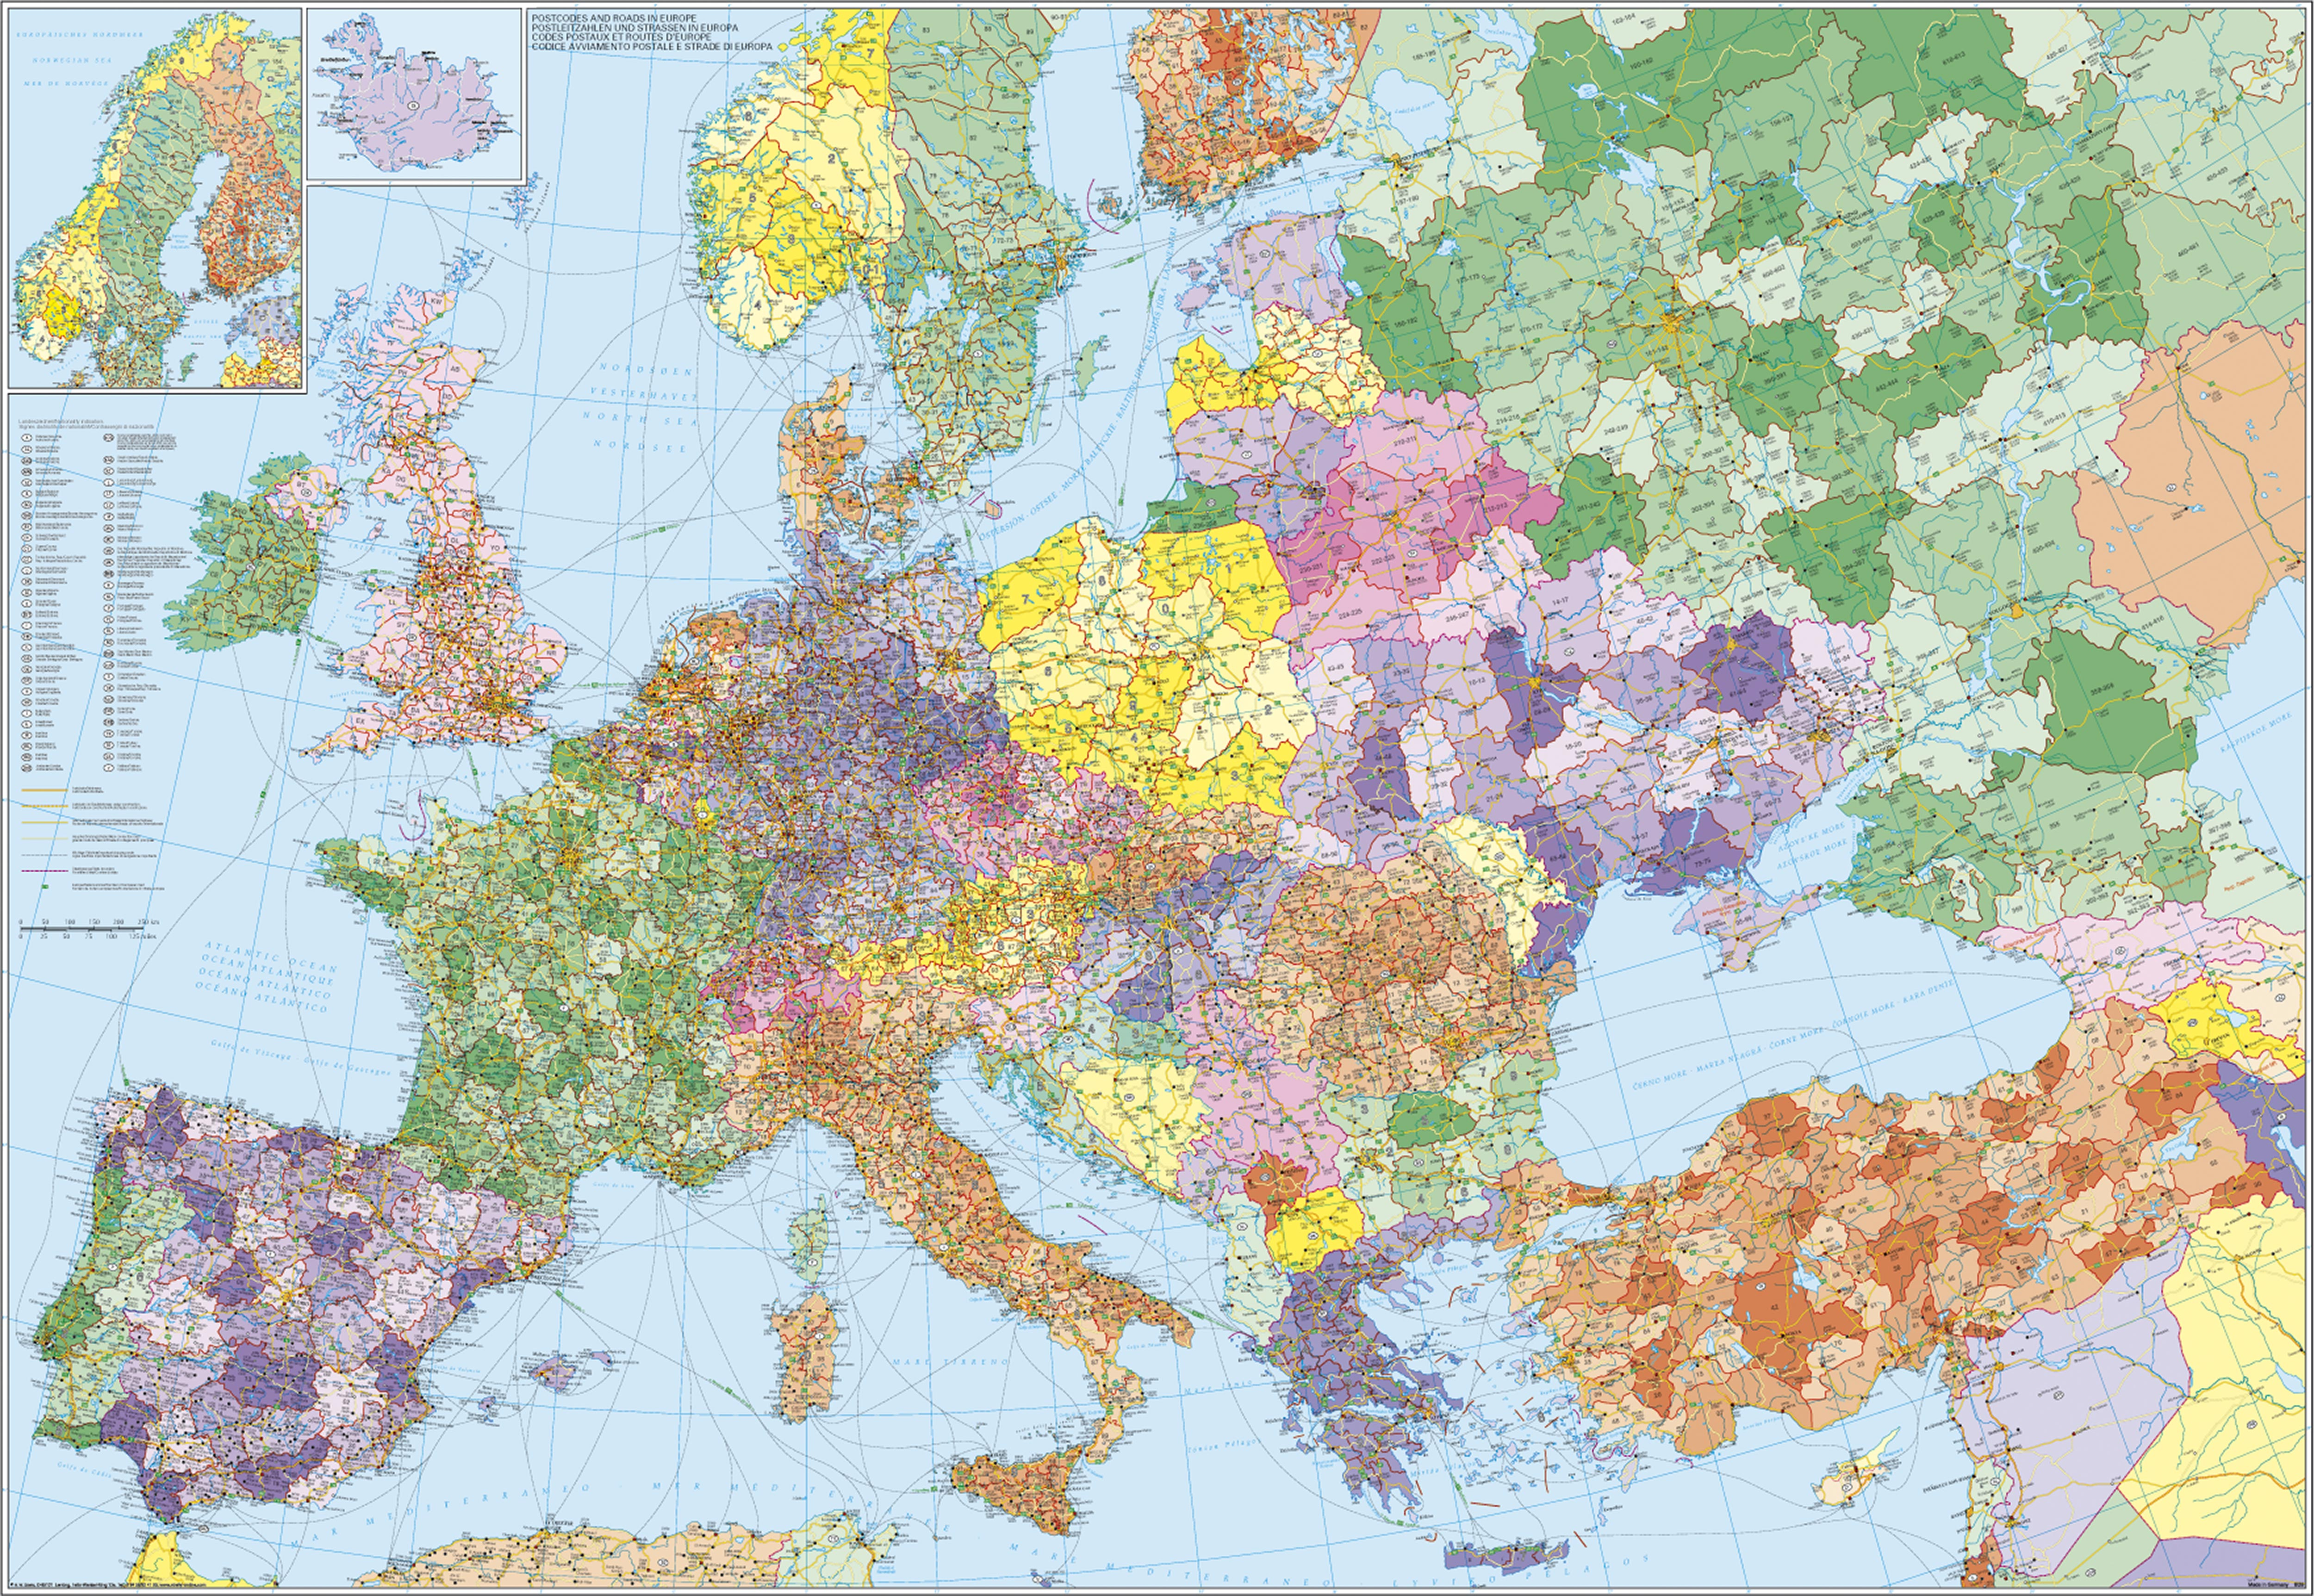 Map Of Europe And Turkey.Post Code Wall Map Europe With Turkey 137 X 89 Cm Europe Europe